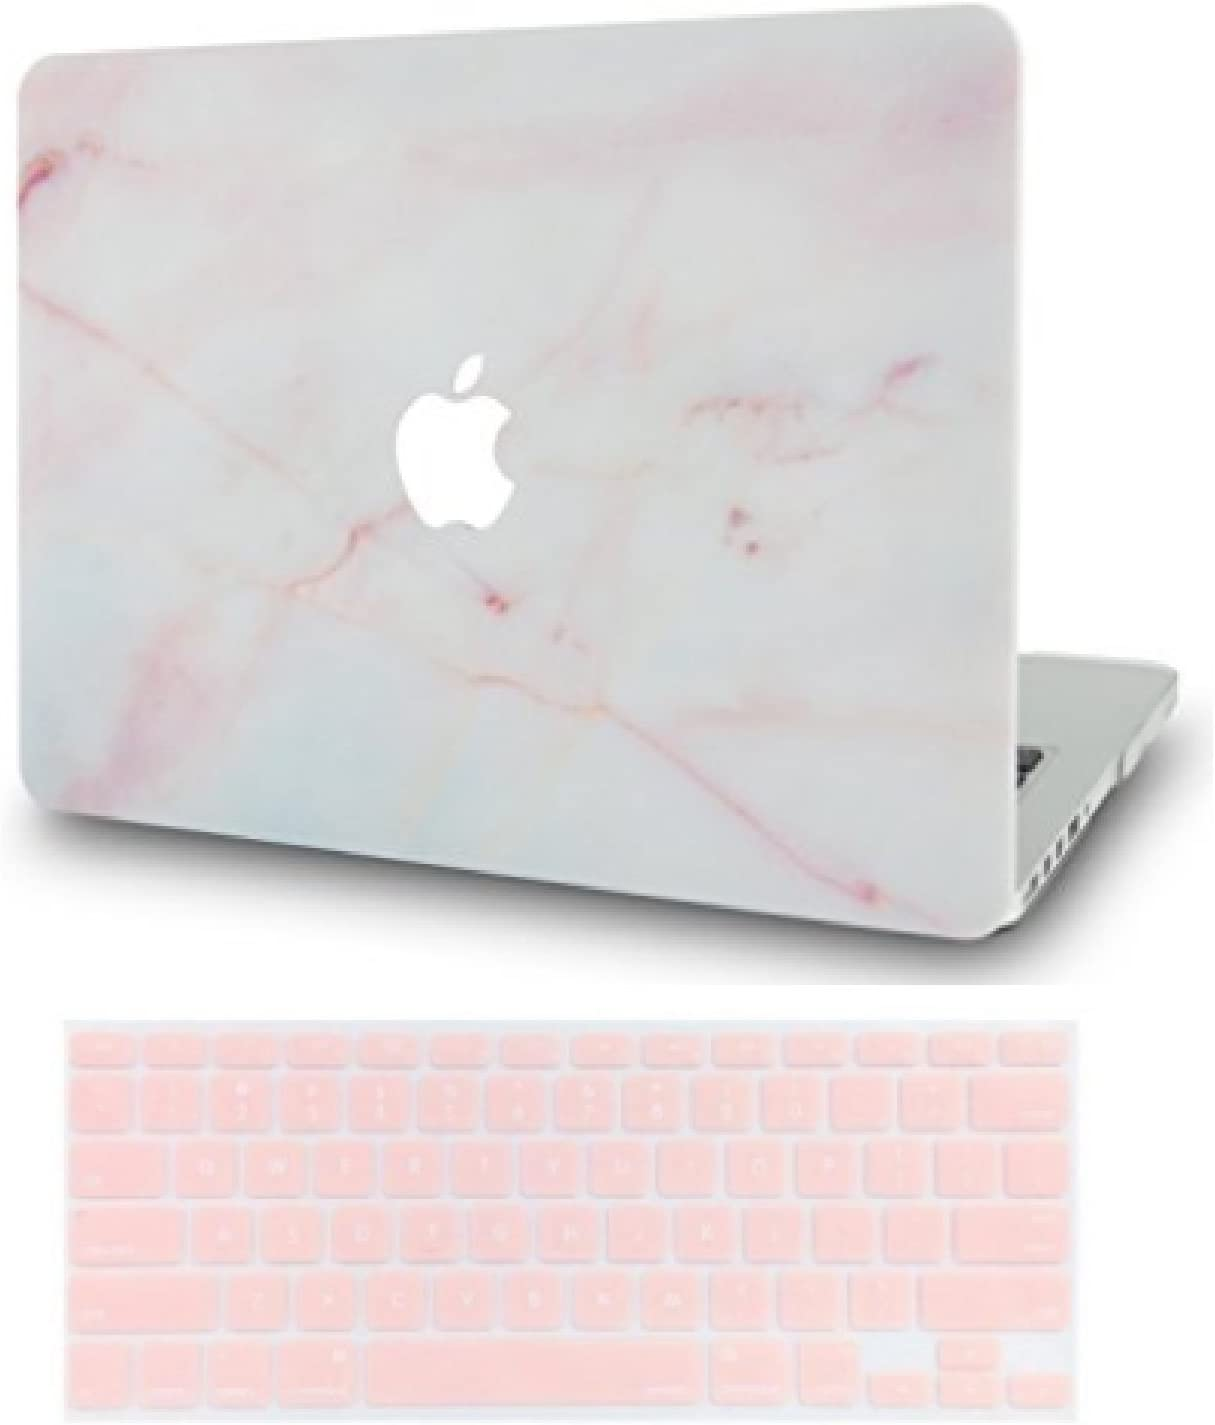 LuvCase 2 in 1 Laptop Case for MacBook Pro 15 Touch Bar (2019/2018/2017/2016) A1990/A1707 Rubberized Plastic Hard Shell Cover & Keyboard Cover (Pink Marble)